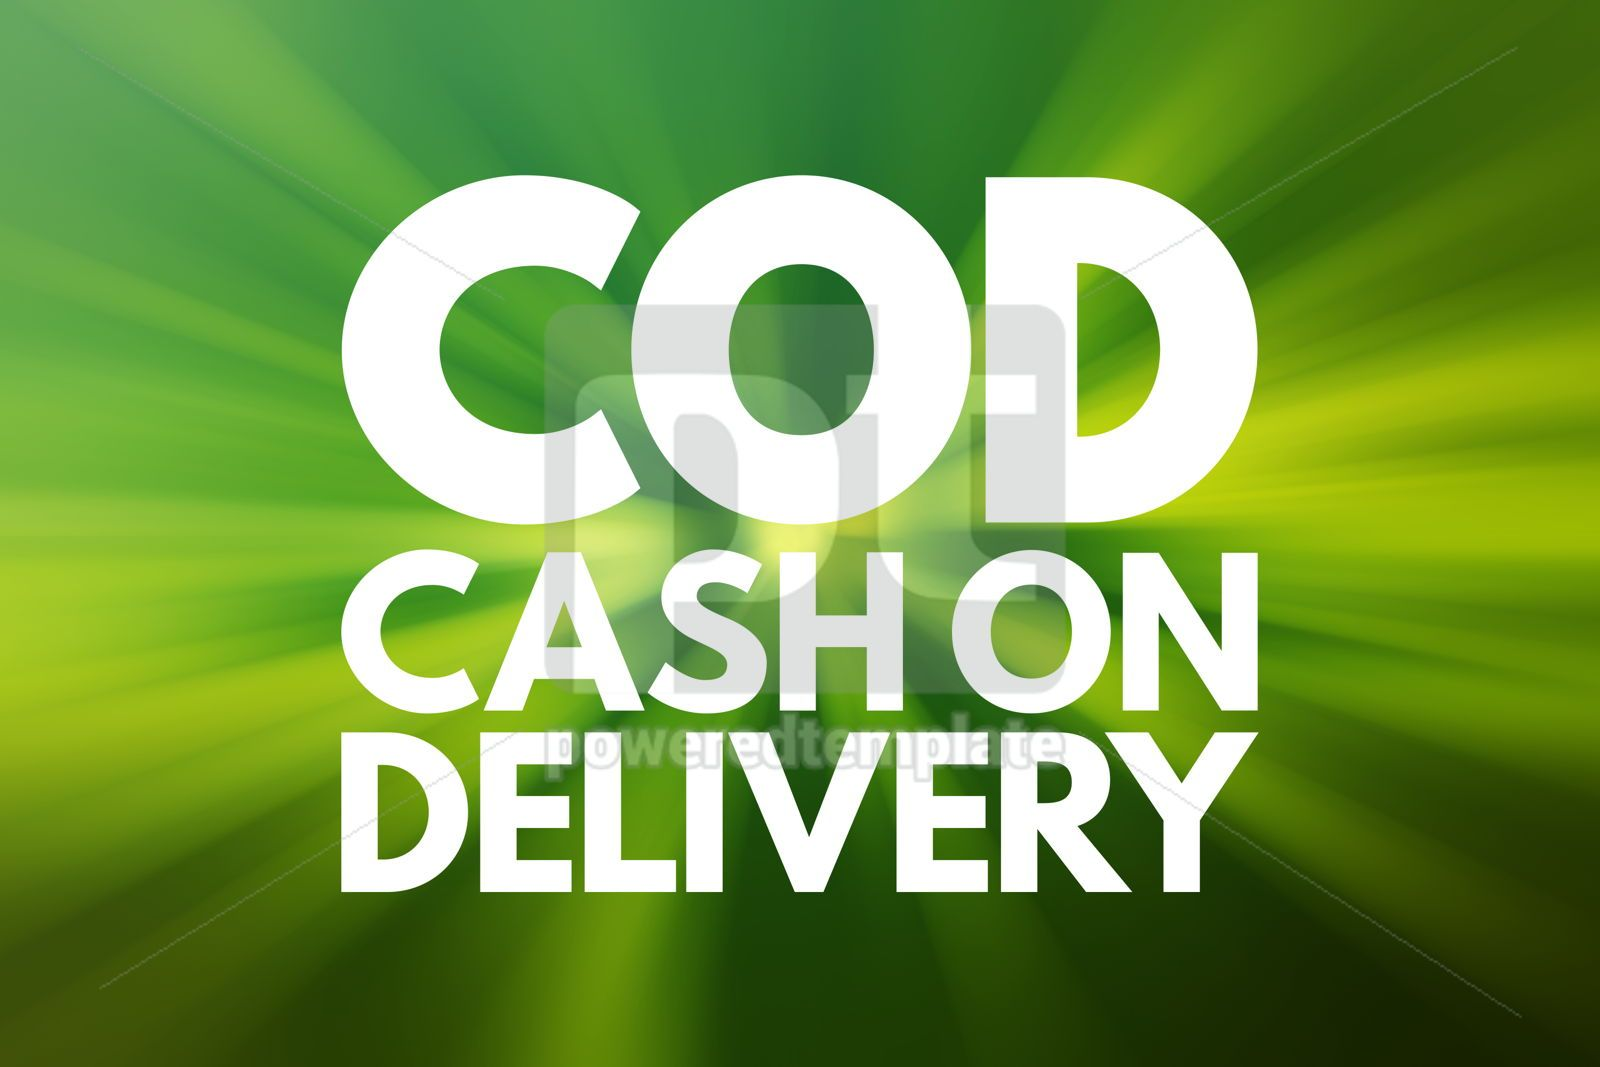 COD - Cash On Delivery acronym business concept background, 16561, Business — PoweredTemplate.com